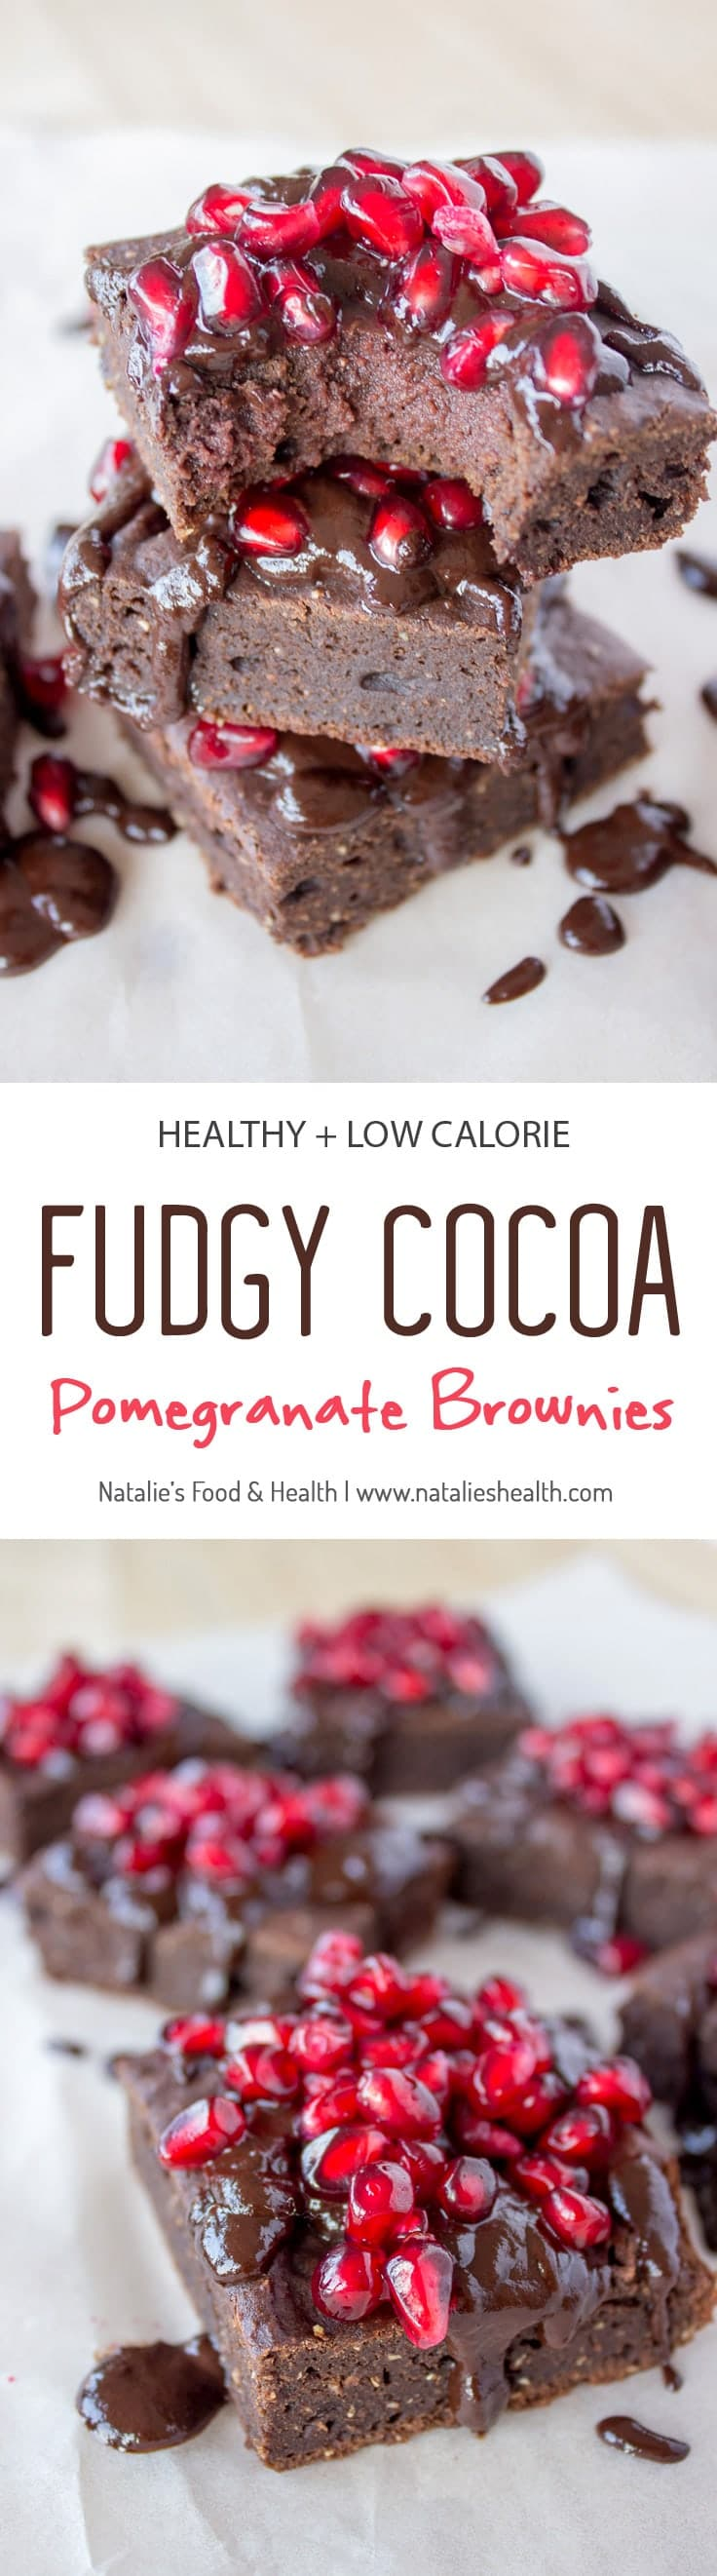 Full of luxurious dark chocolate flavor, made with all healthy ingredients these Fudgy Cocoa Pomegranate Brownies are the pure cocoa pleasure. Soft and fudgy, enriched with warm aromatic spices, this melt in your mouth dessert will surely delight you. CLICk to grab recipe or PIN for later!